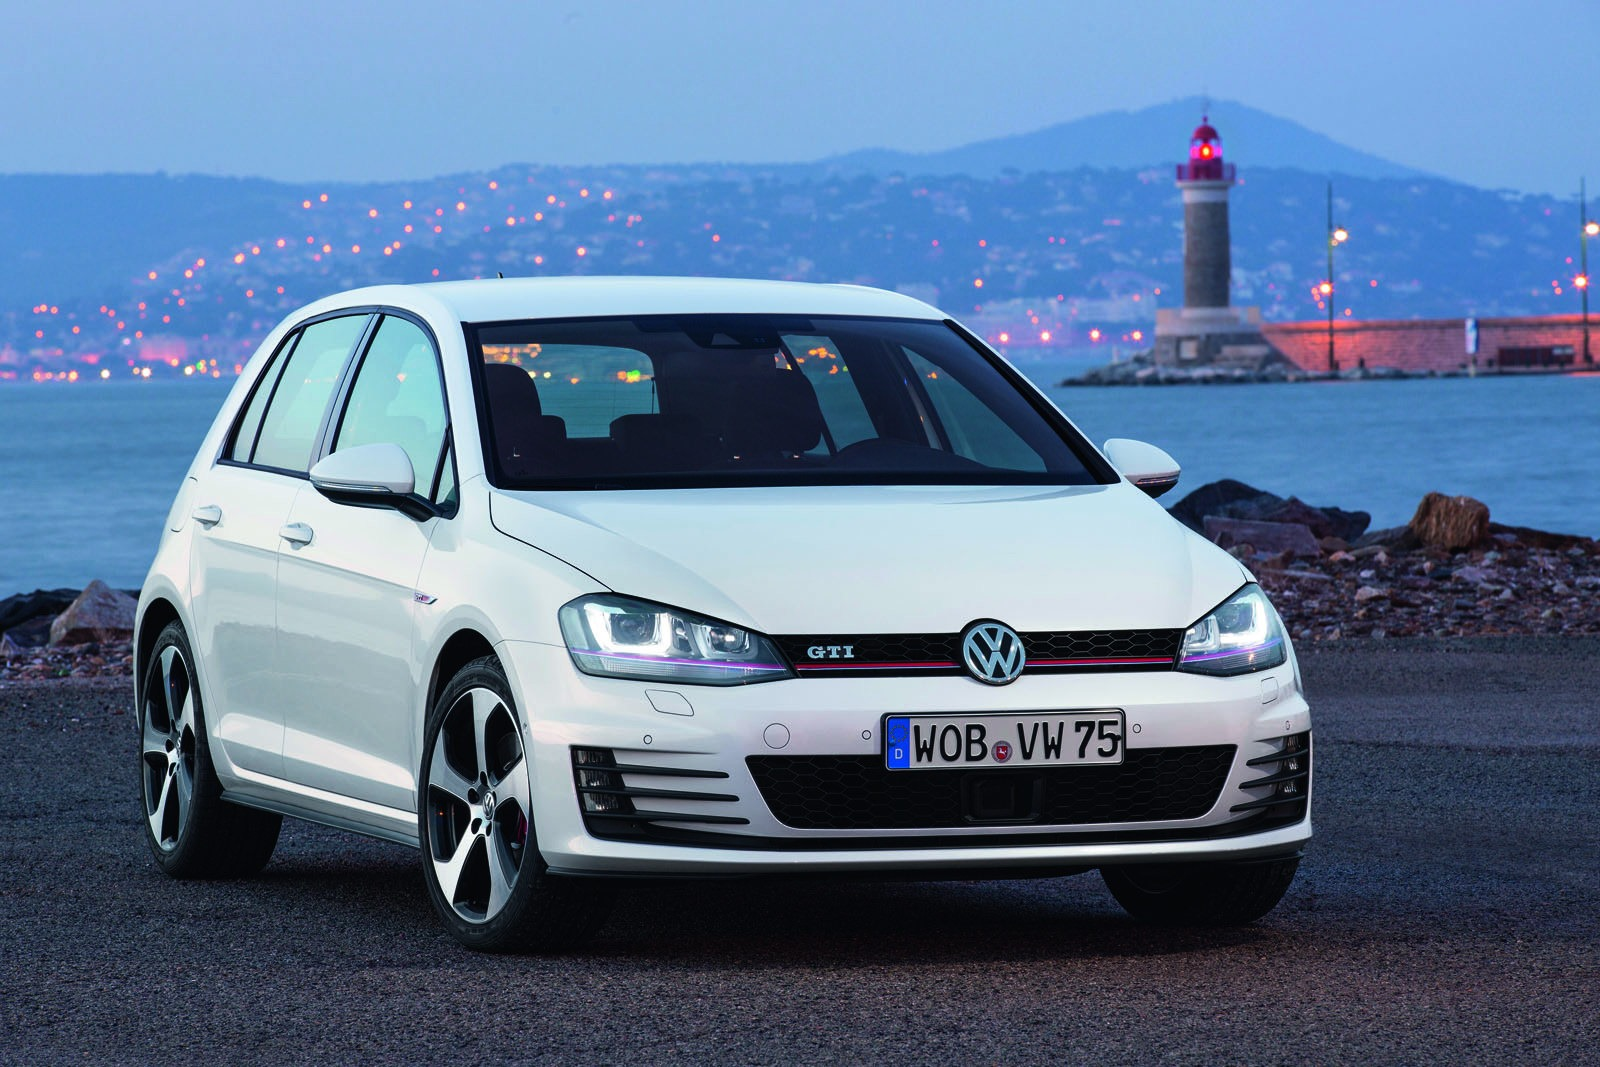 2013 volkswagen golf gti new photos released autoevolution. Black Bedroom Furniture Sets. Home Design Ideas